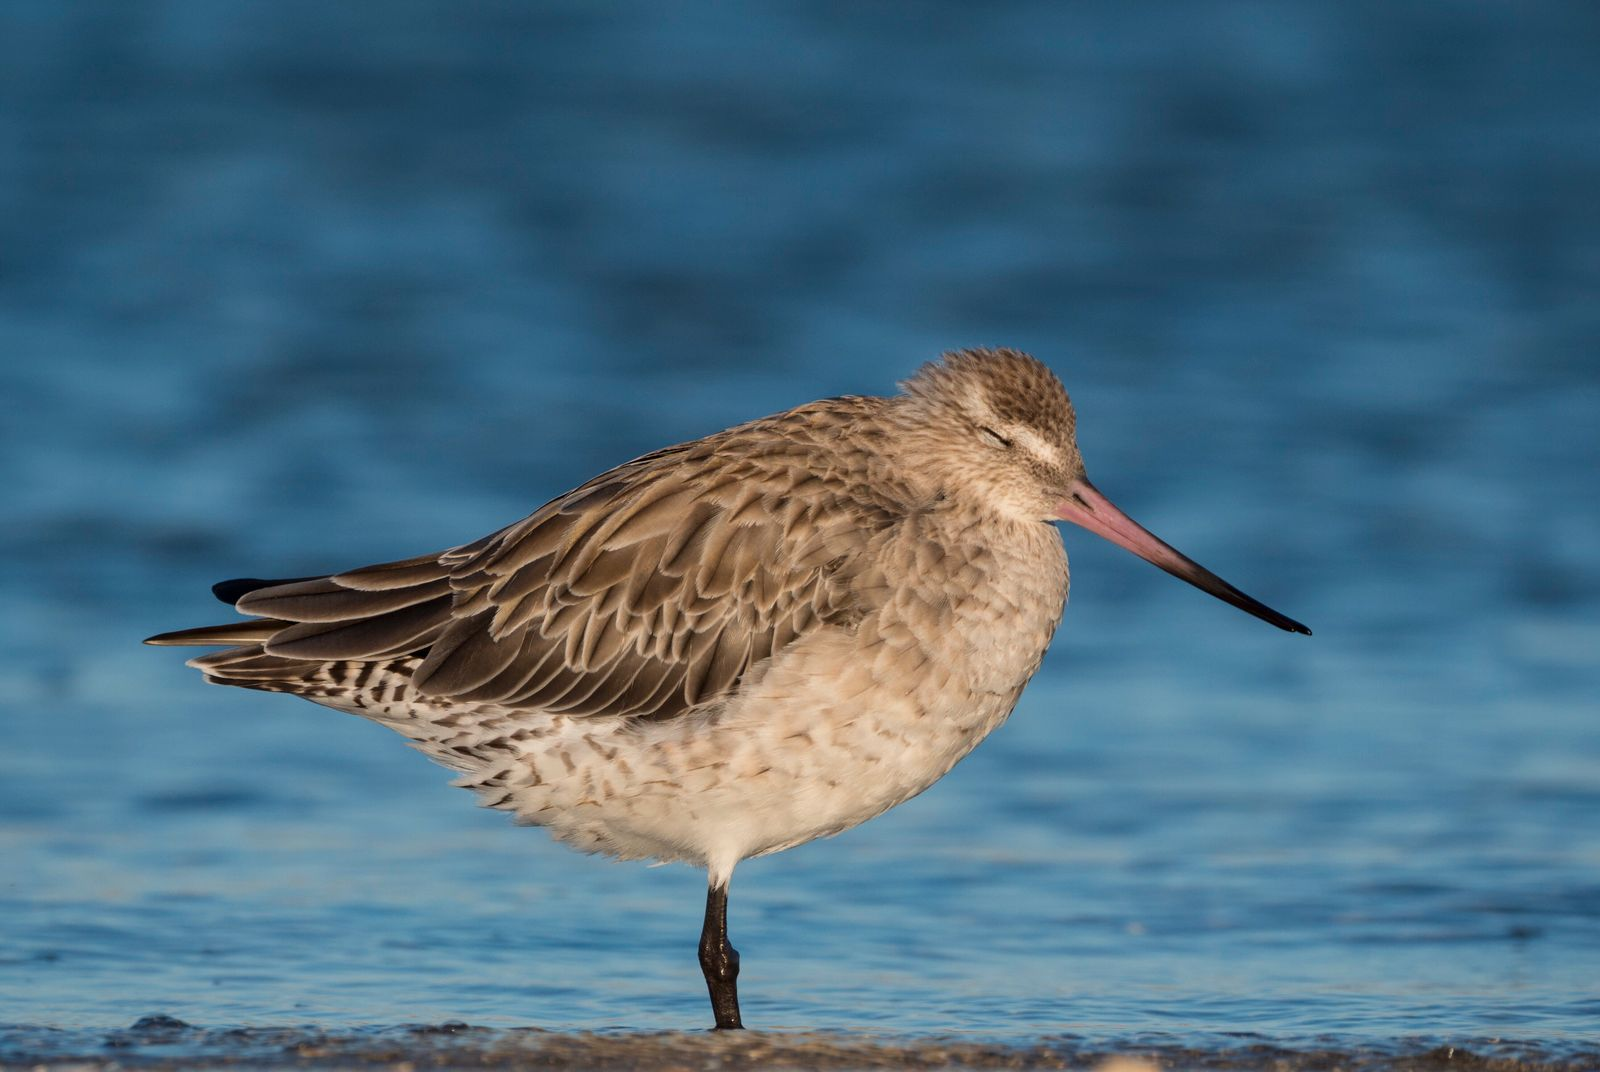 Bar-tailed godwit, Limosa lapponica, at Waipu Wildlife Refuge, Northland, New Zealand. (Ross Armstrong)